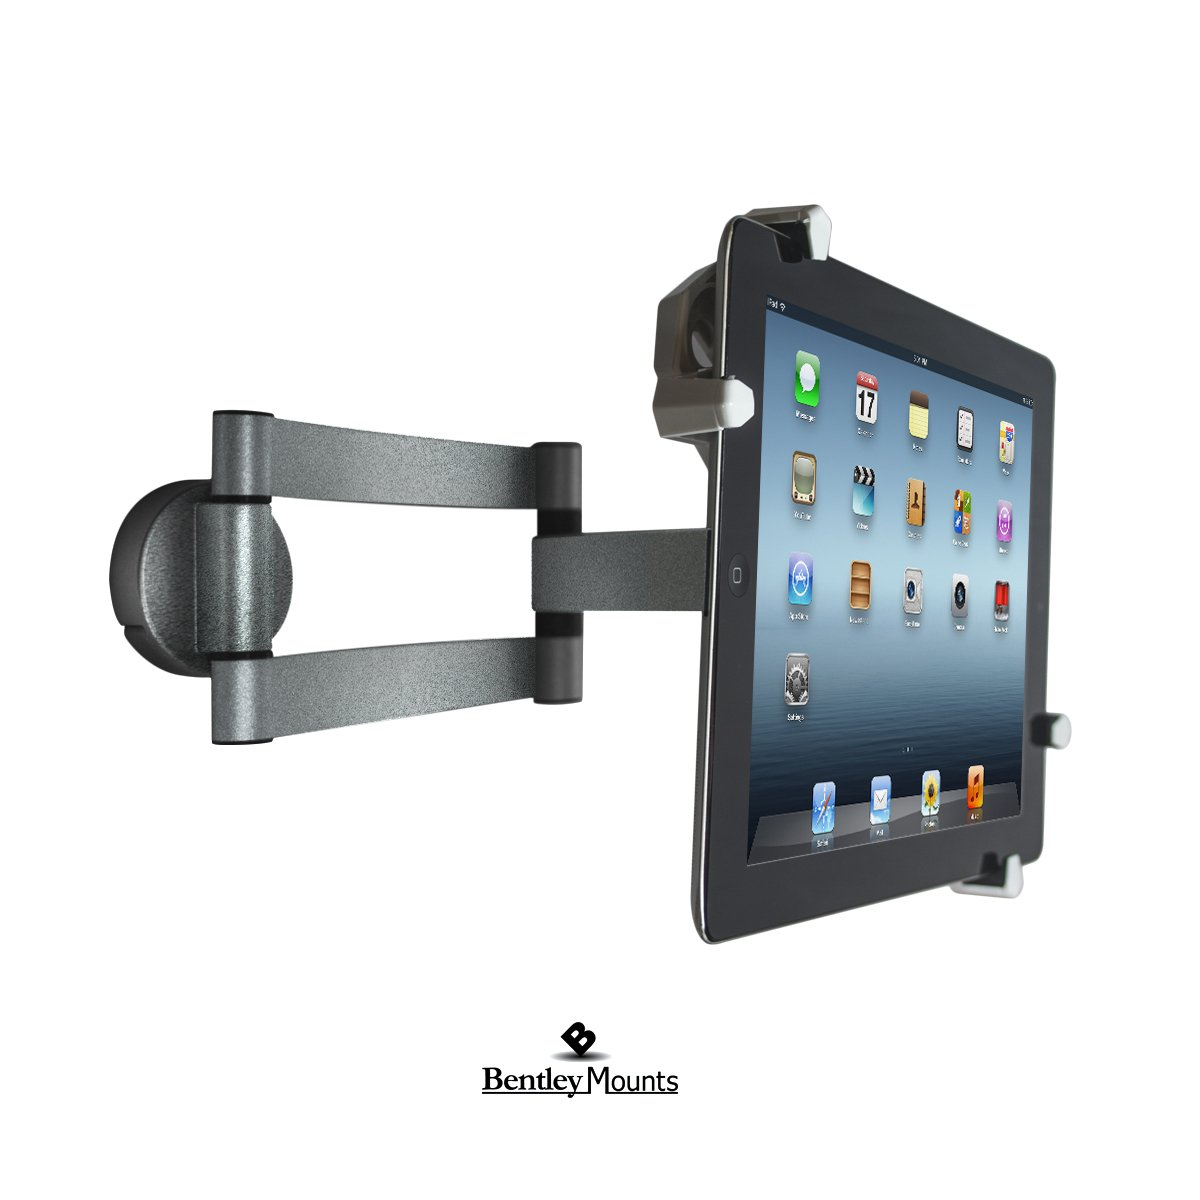 Bentley Mounts Universal Tablet Wall Mount